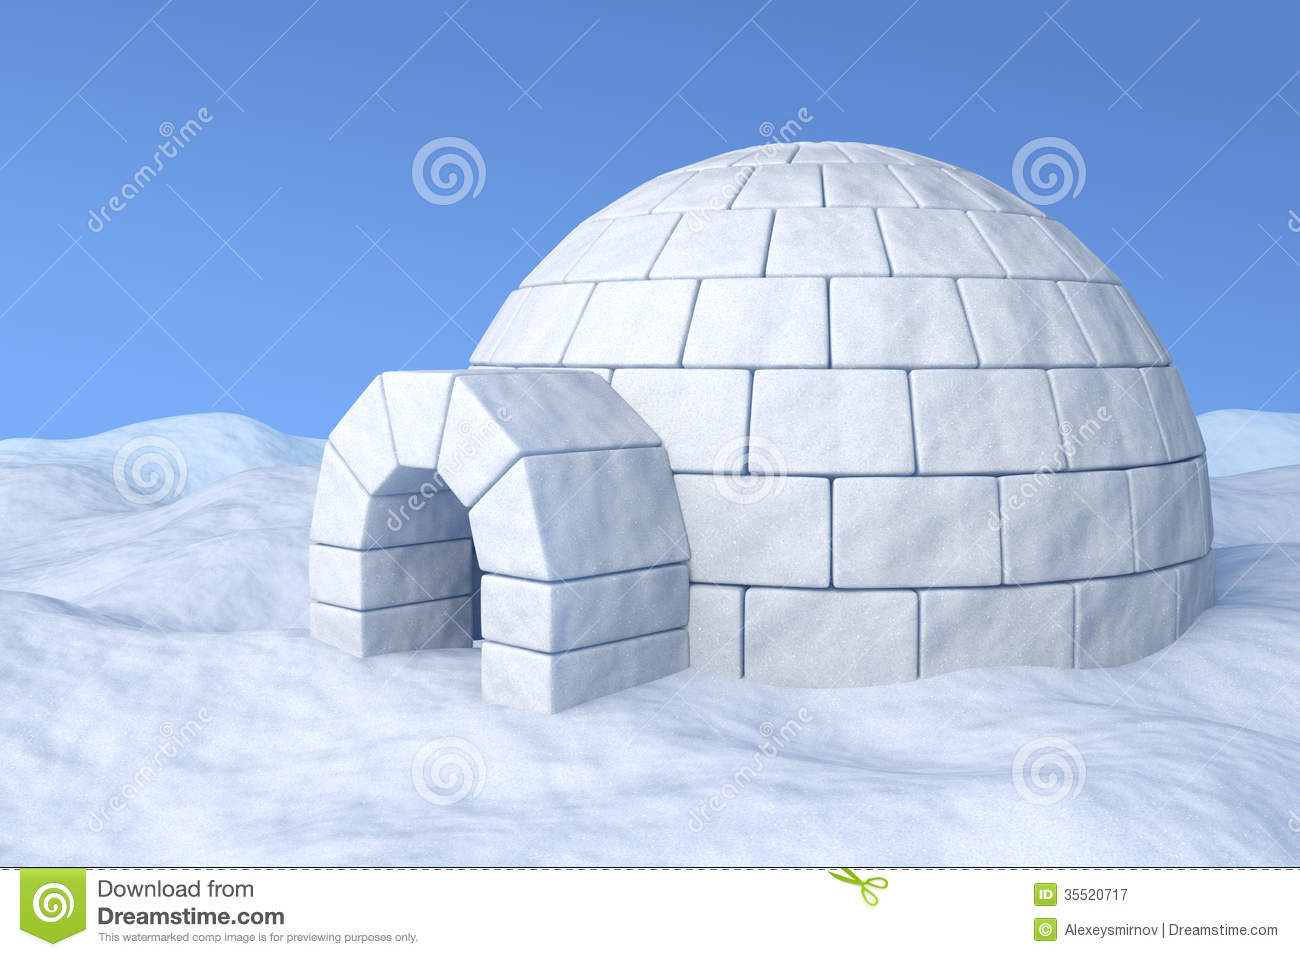 Igloo icehouse on the white snow under blue sky three-dimensional ...